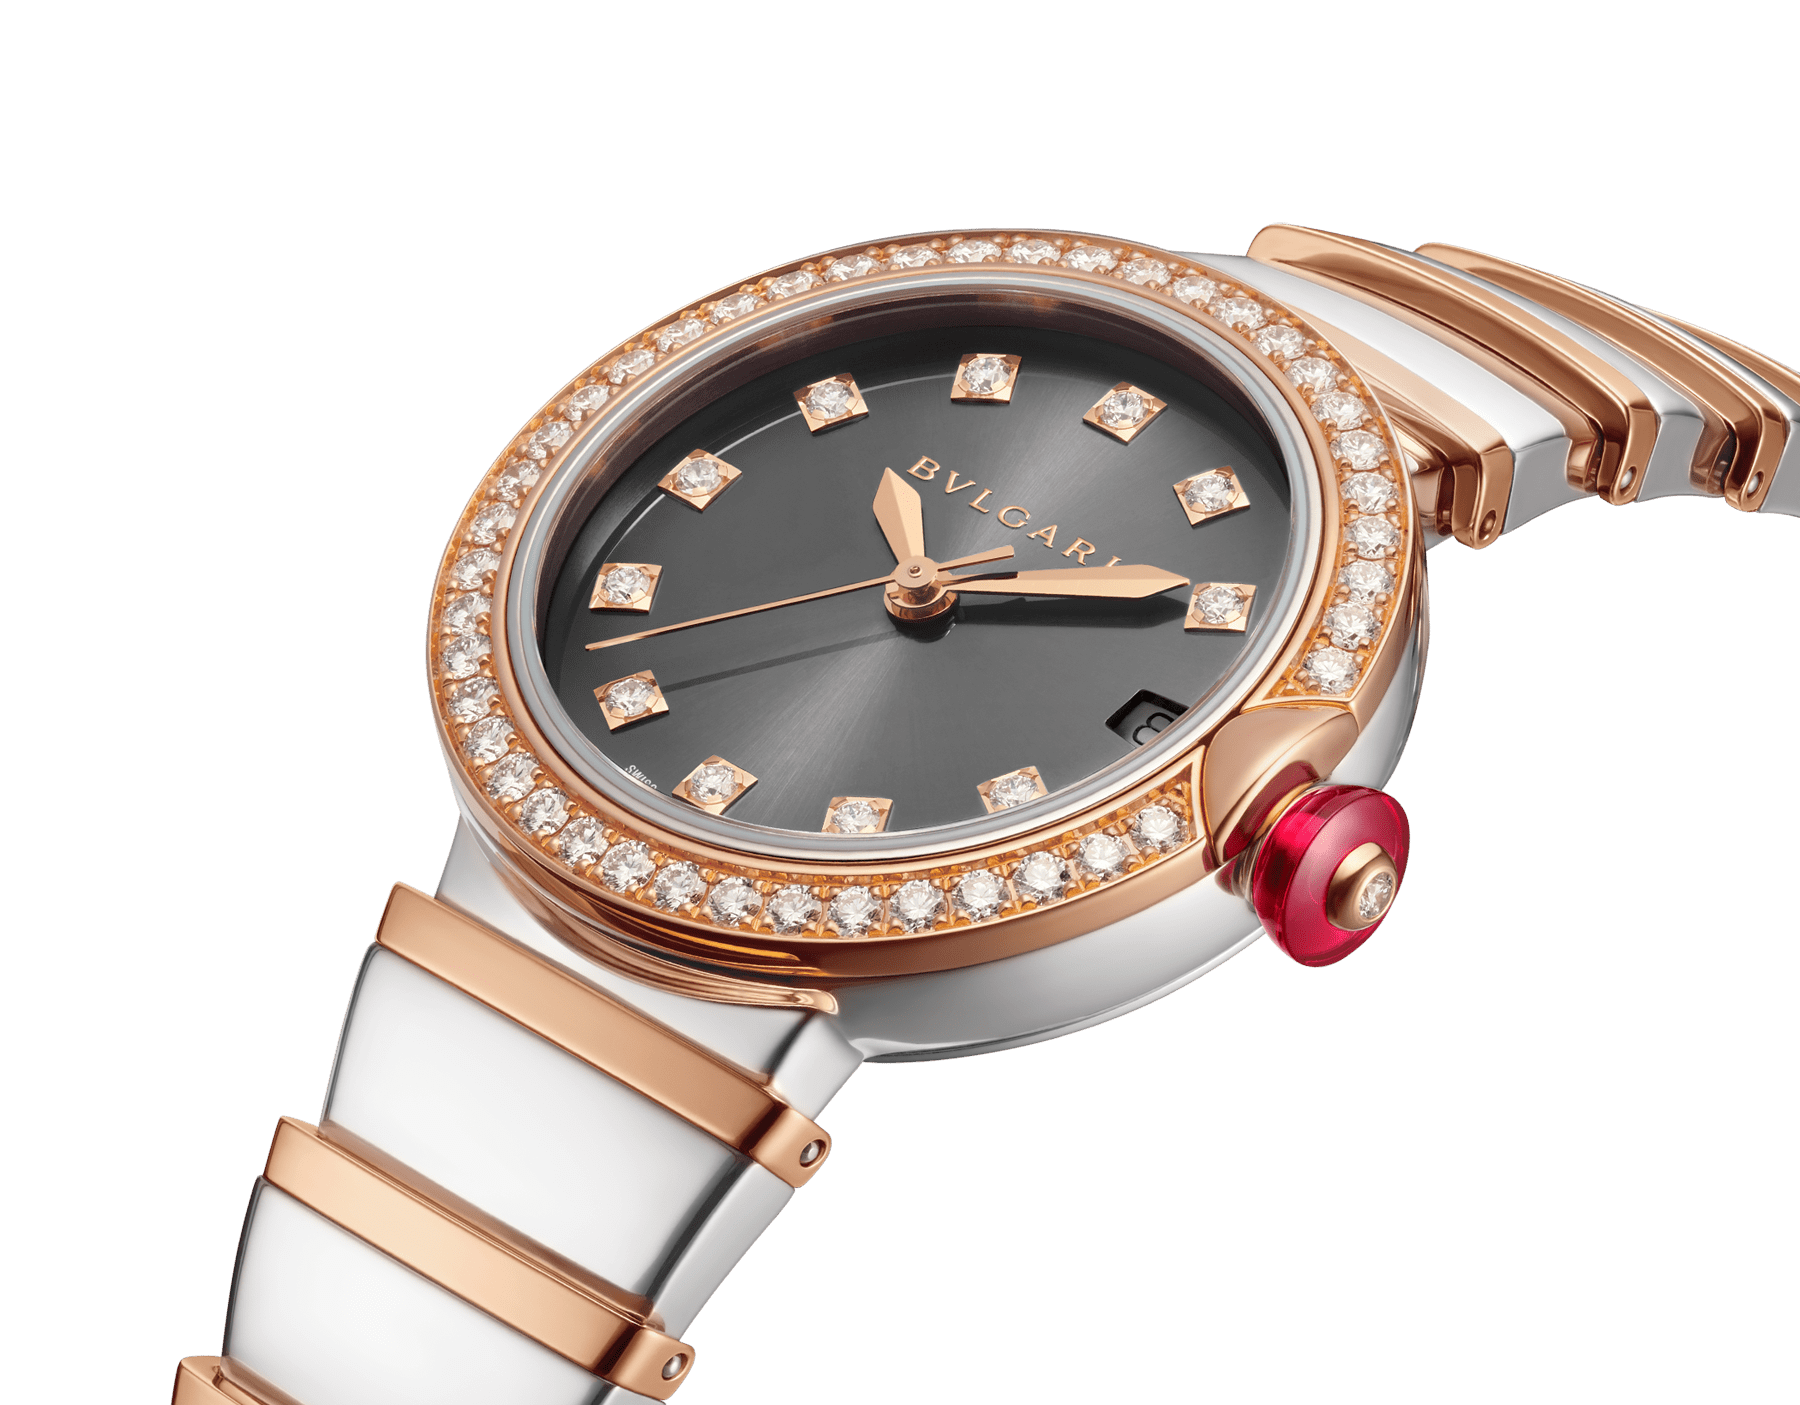 LVCEA watch with stainless steel case, 18 kt rose gold bezel set with diamonds, grey lacquered dial, diamond indexes, stainless steel and 18 kt rose gold bracelet 103029 image 2